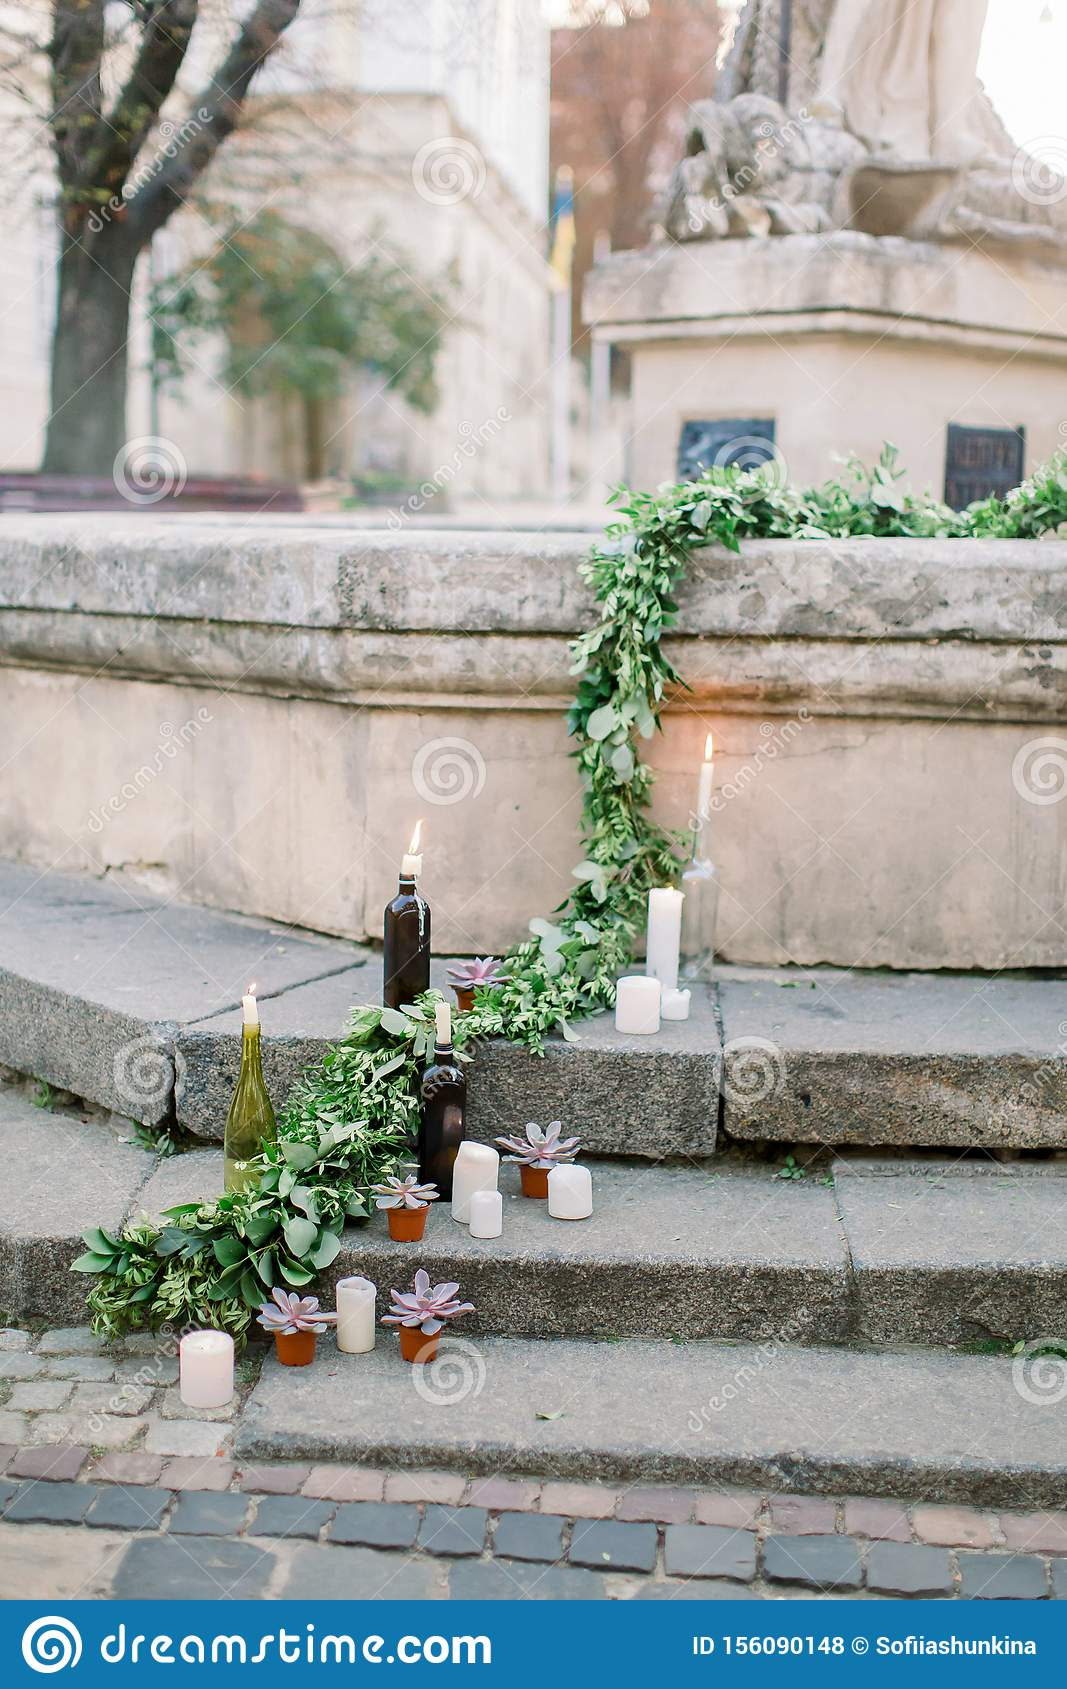 Wedding Ceremony Decor, Decorated Stone Stairs With White ...